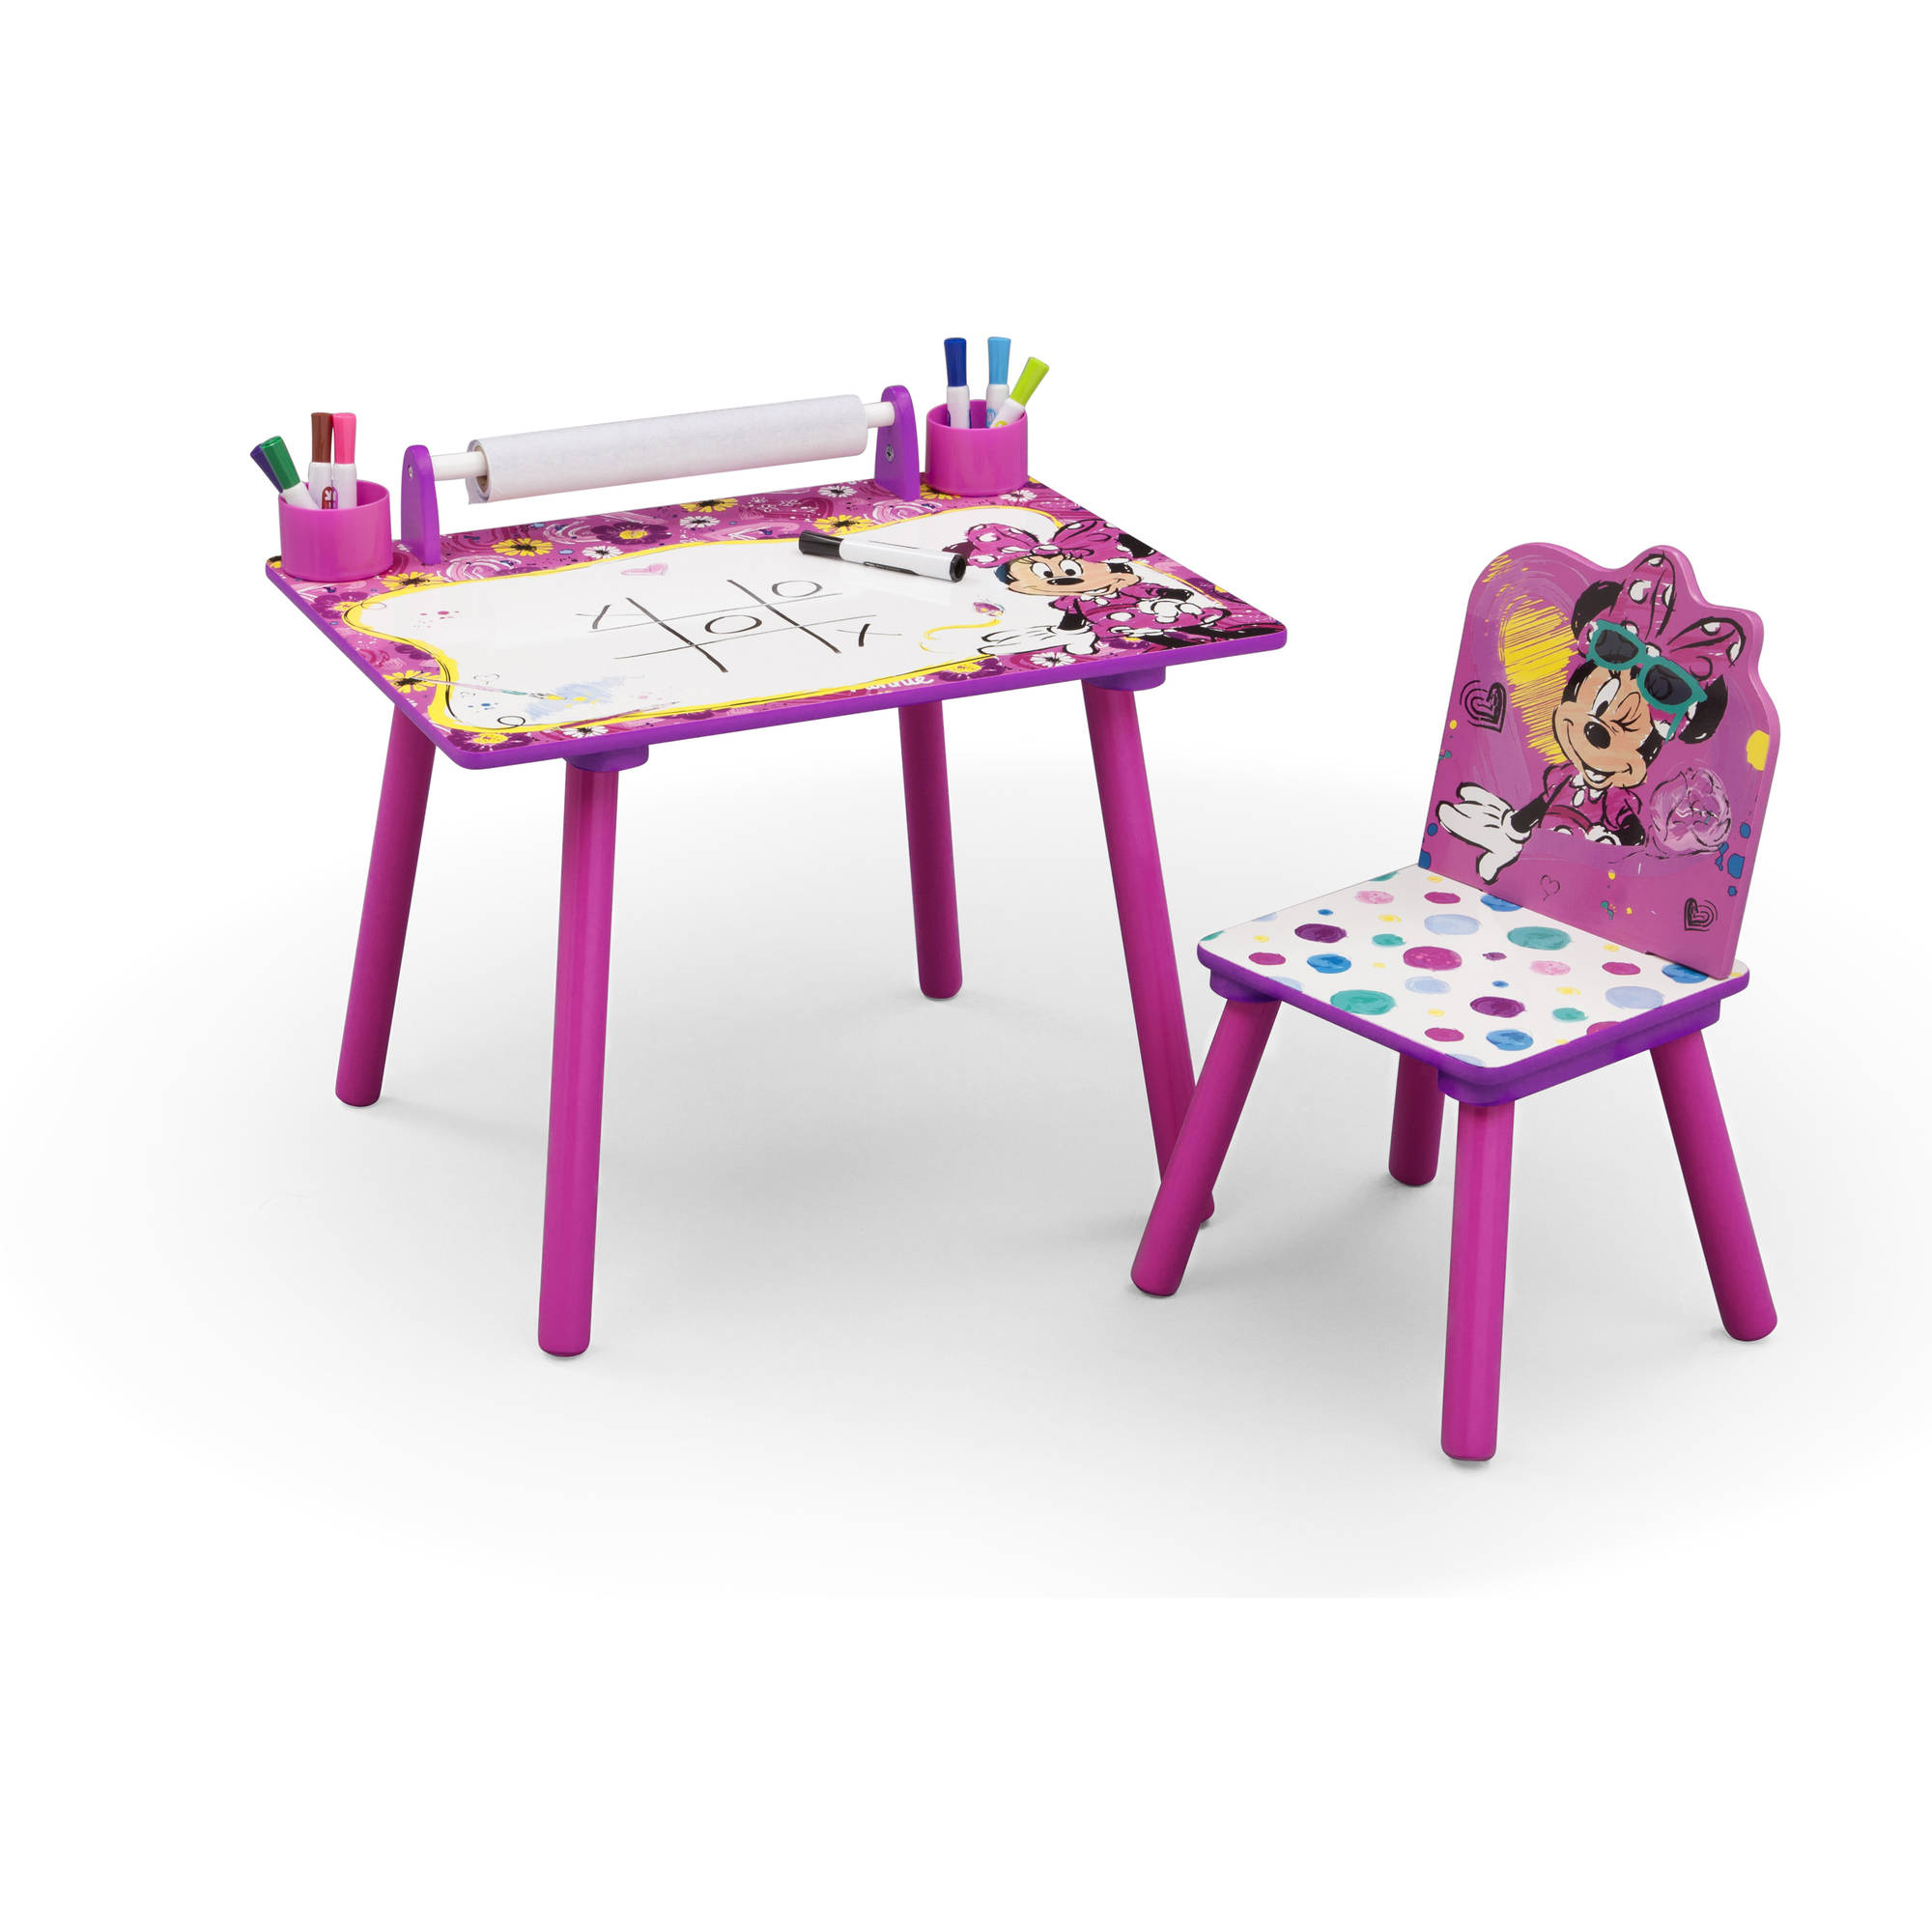 minnie mouse chairs for kids garden chair covers amazon art desk play drawing disney